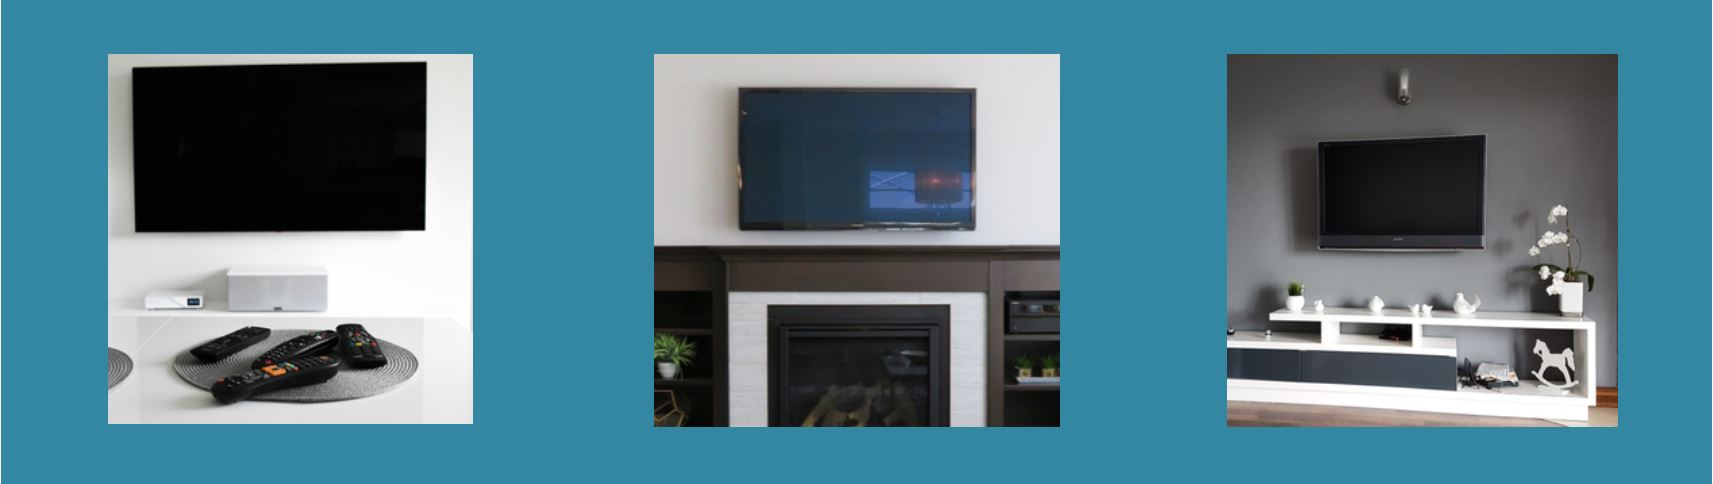 Three pictures side by side on a blue background, the first shows a TV mounted on a white wall, the next is a TV mounted on a wall above a fireplace, the third is a TV mounted on a wall above a small shelving unit